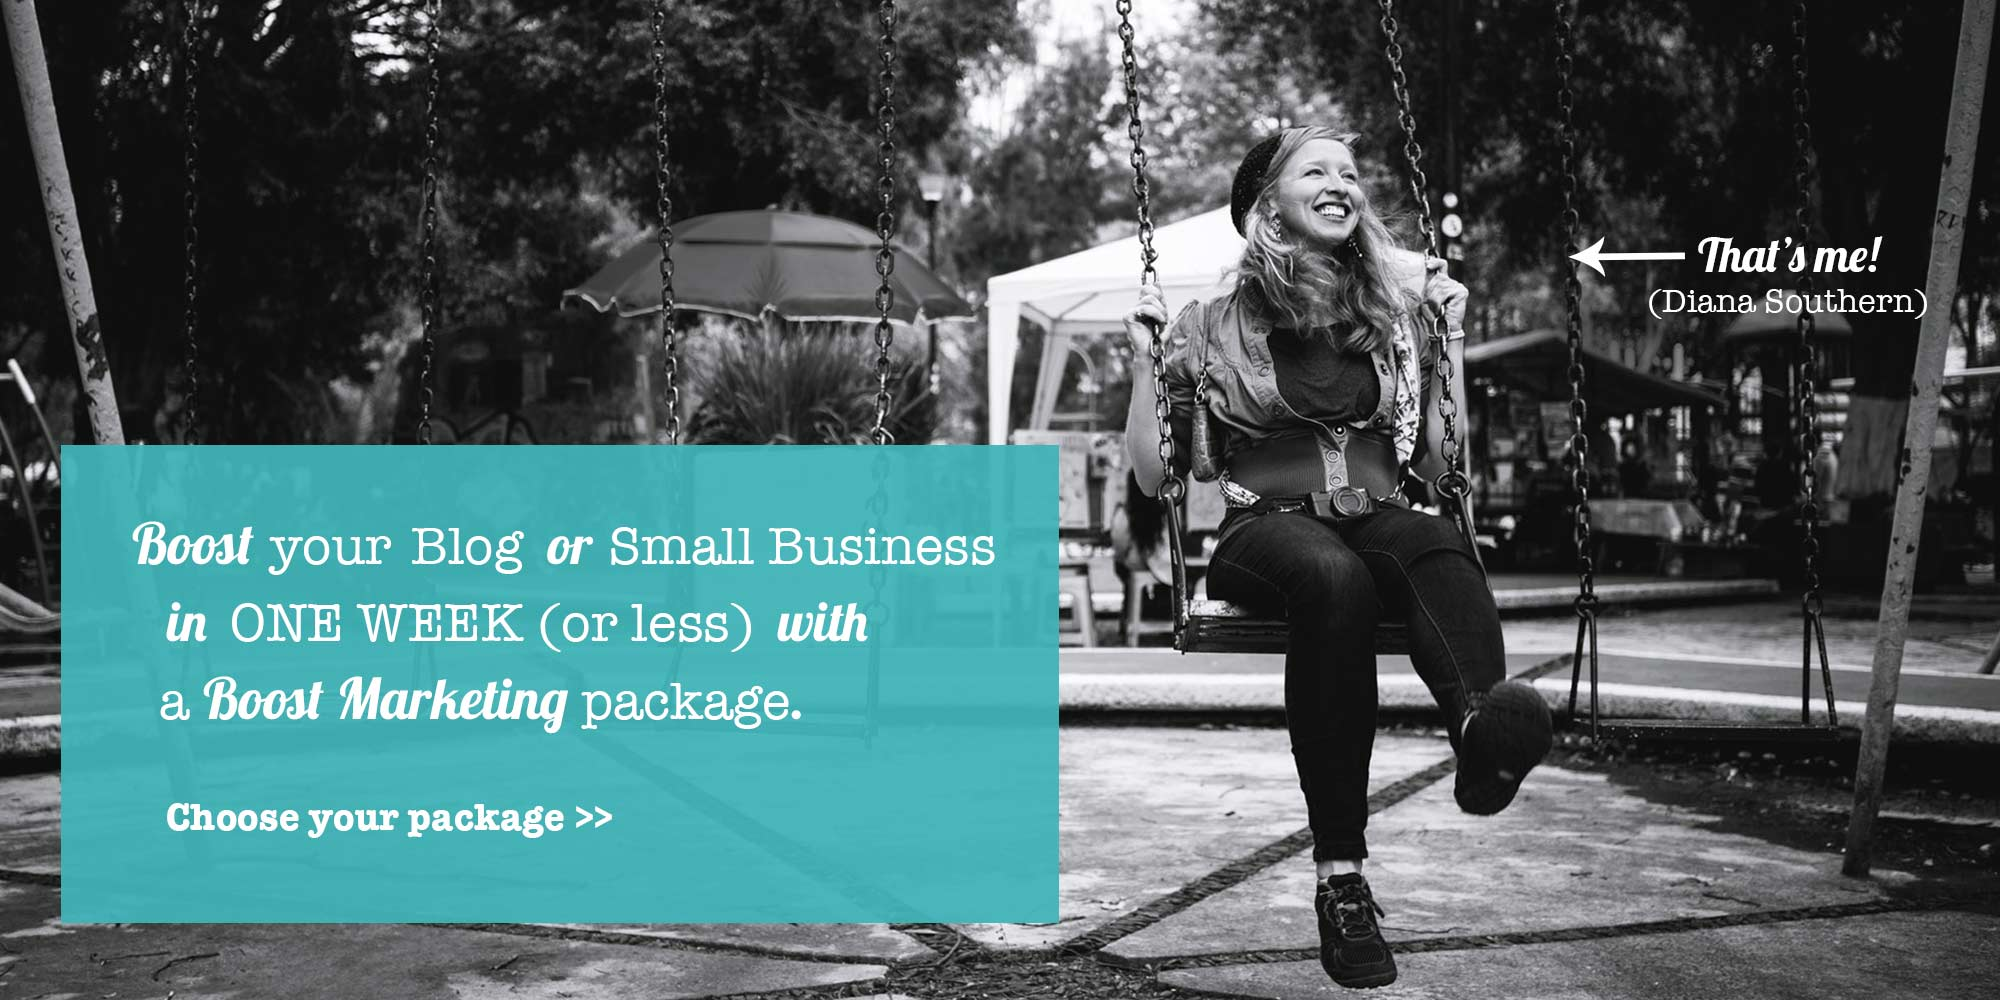 Boost your blog or business in one week (or less) with a Boost Marketing Package